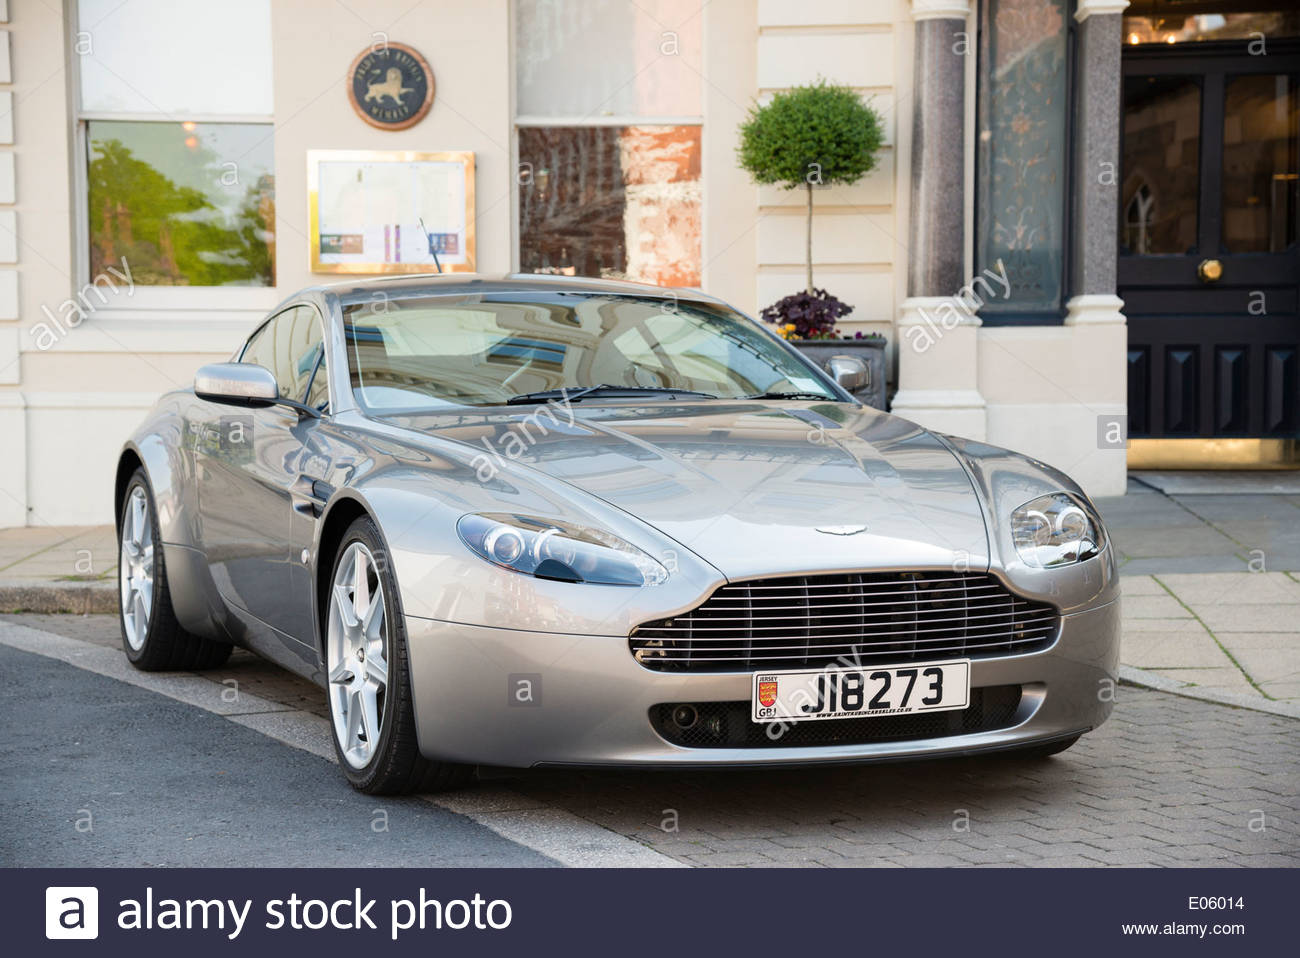 Aston Martin car parked in the street in front of a hotel, Hereford, UK. - Stock Image